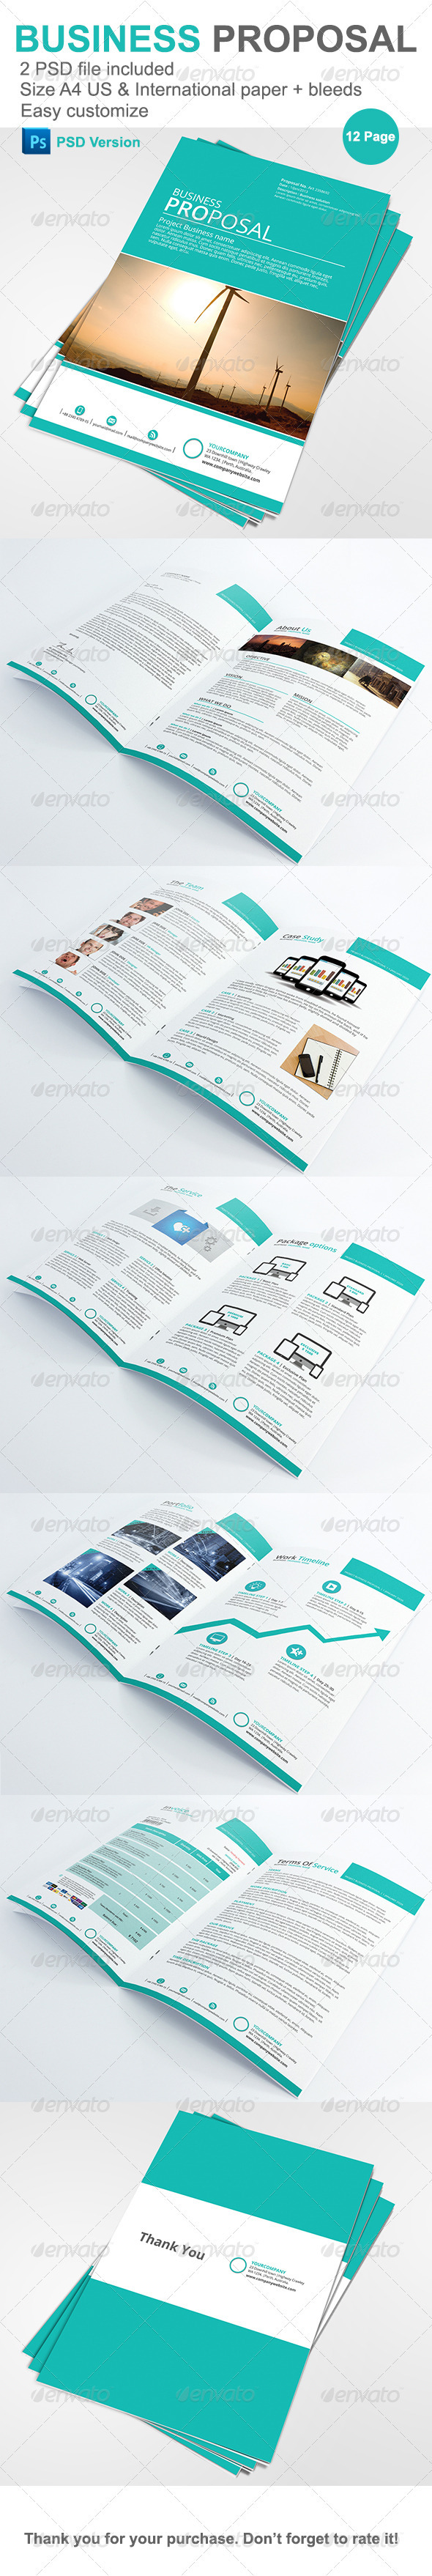 GraphicRiver Gstudio Business Proposal Template 4004682